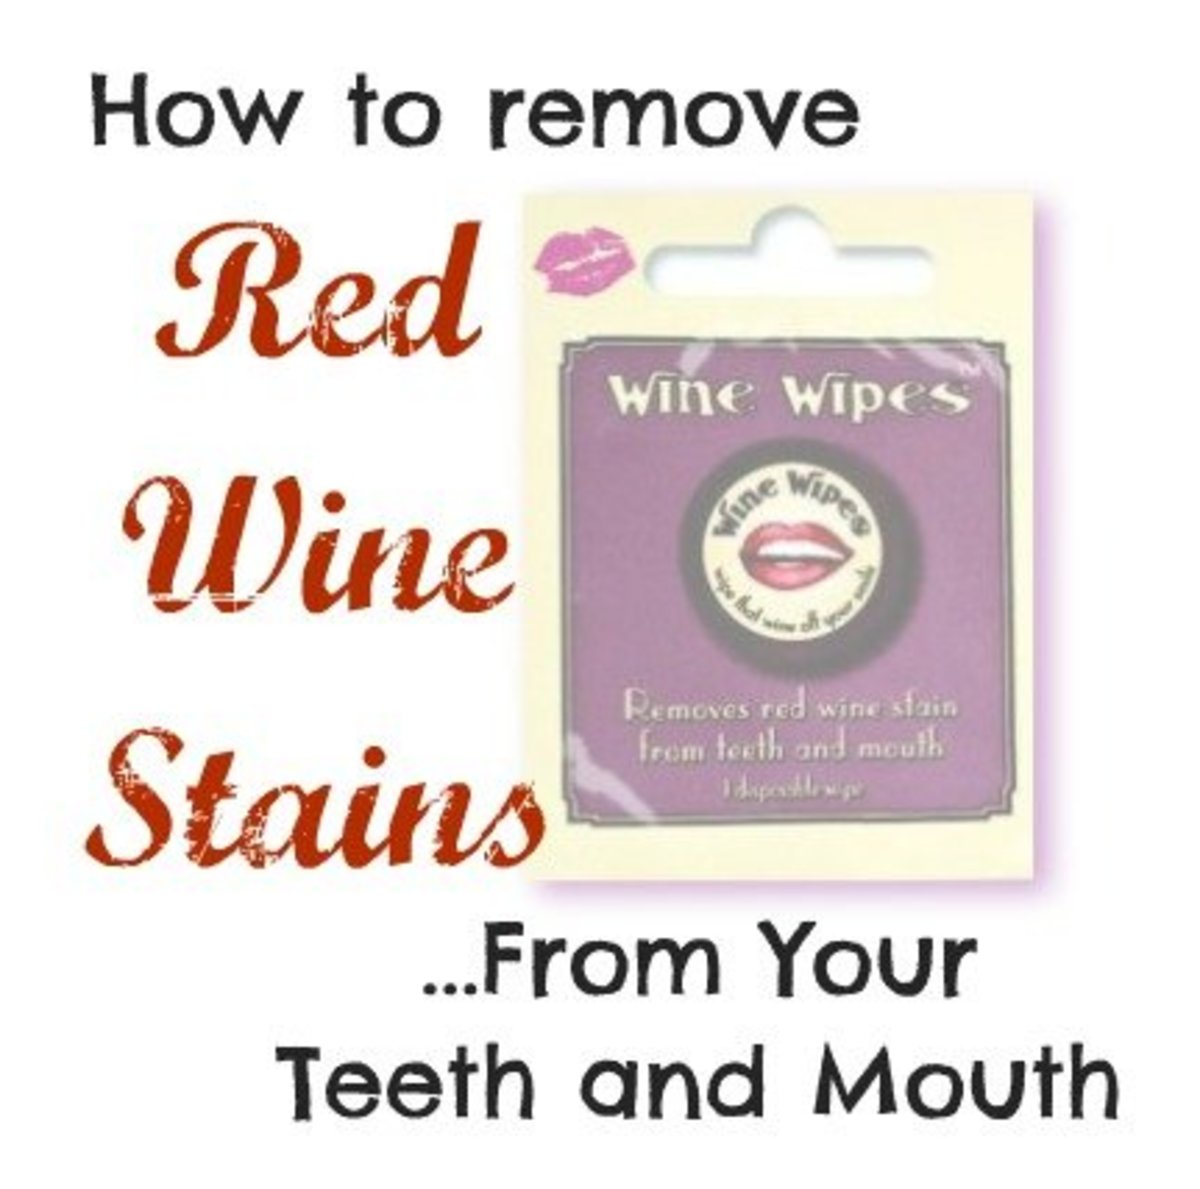 How to Remove Red Wine Stains From Lips, Teeth and Your Tongue - Wine Wipes